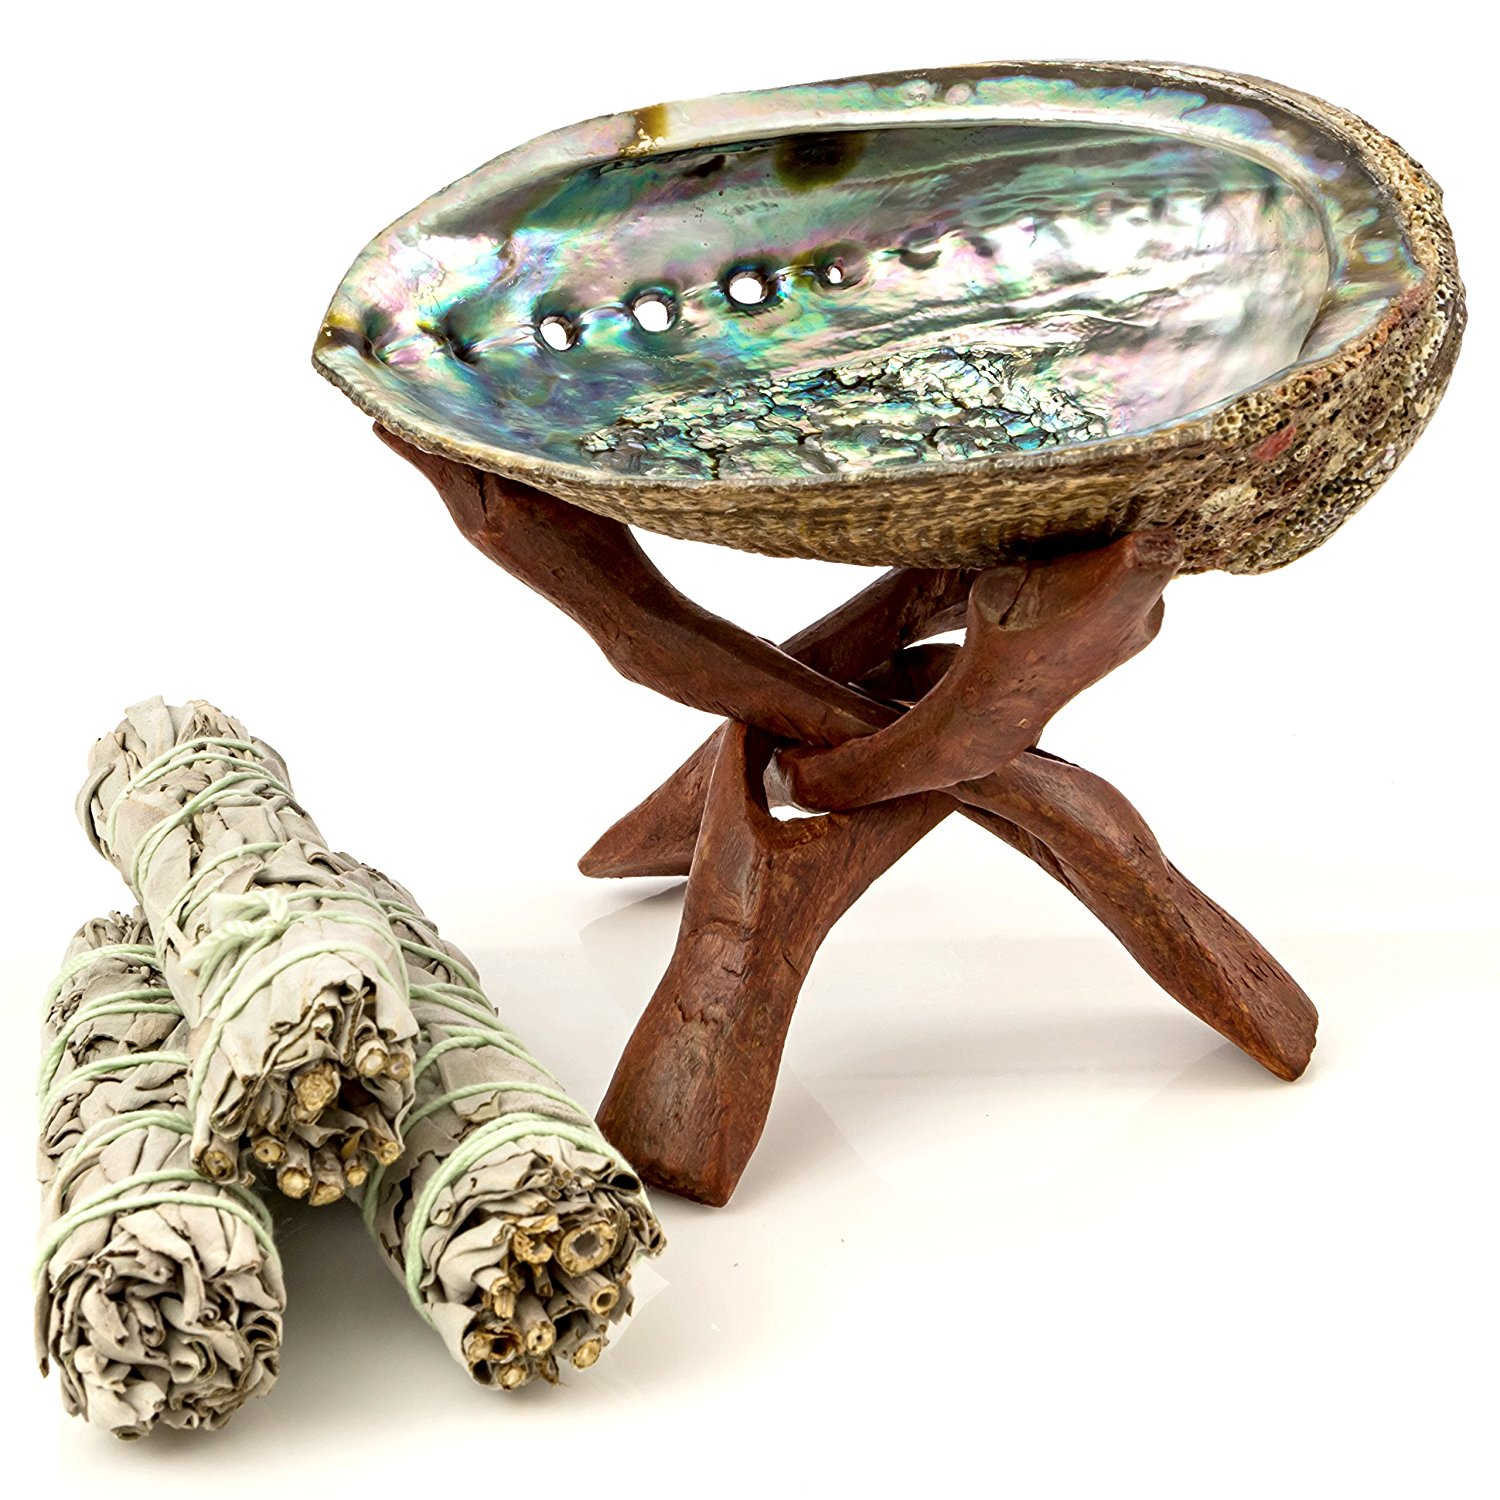 Sage Clearing Kit to Clear Negative Energy